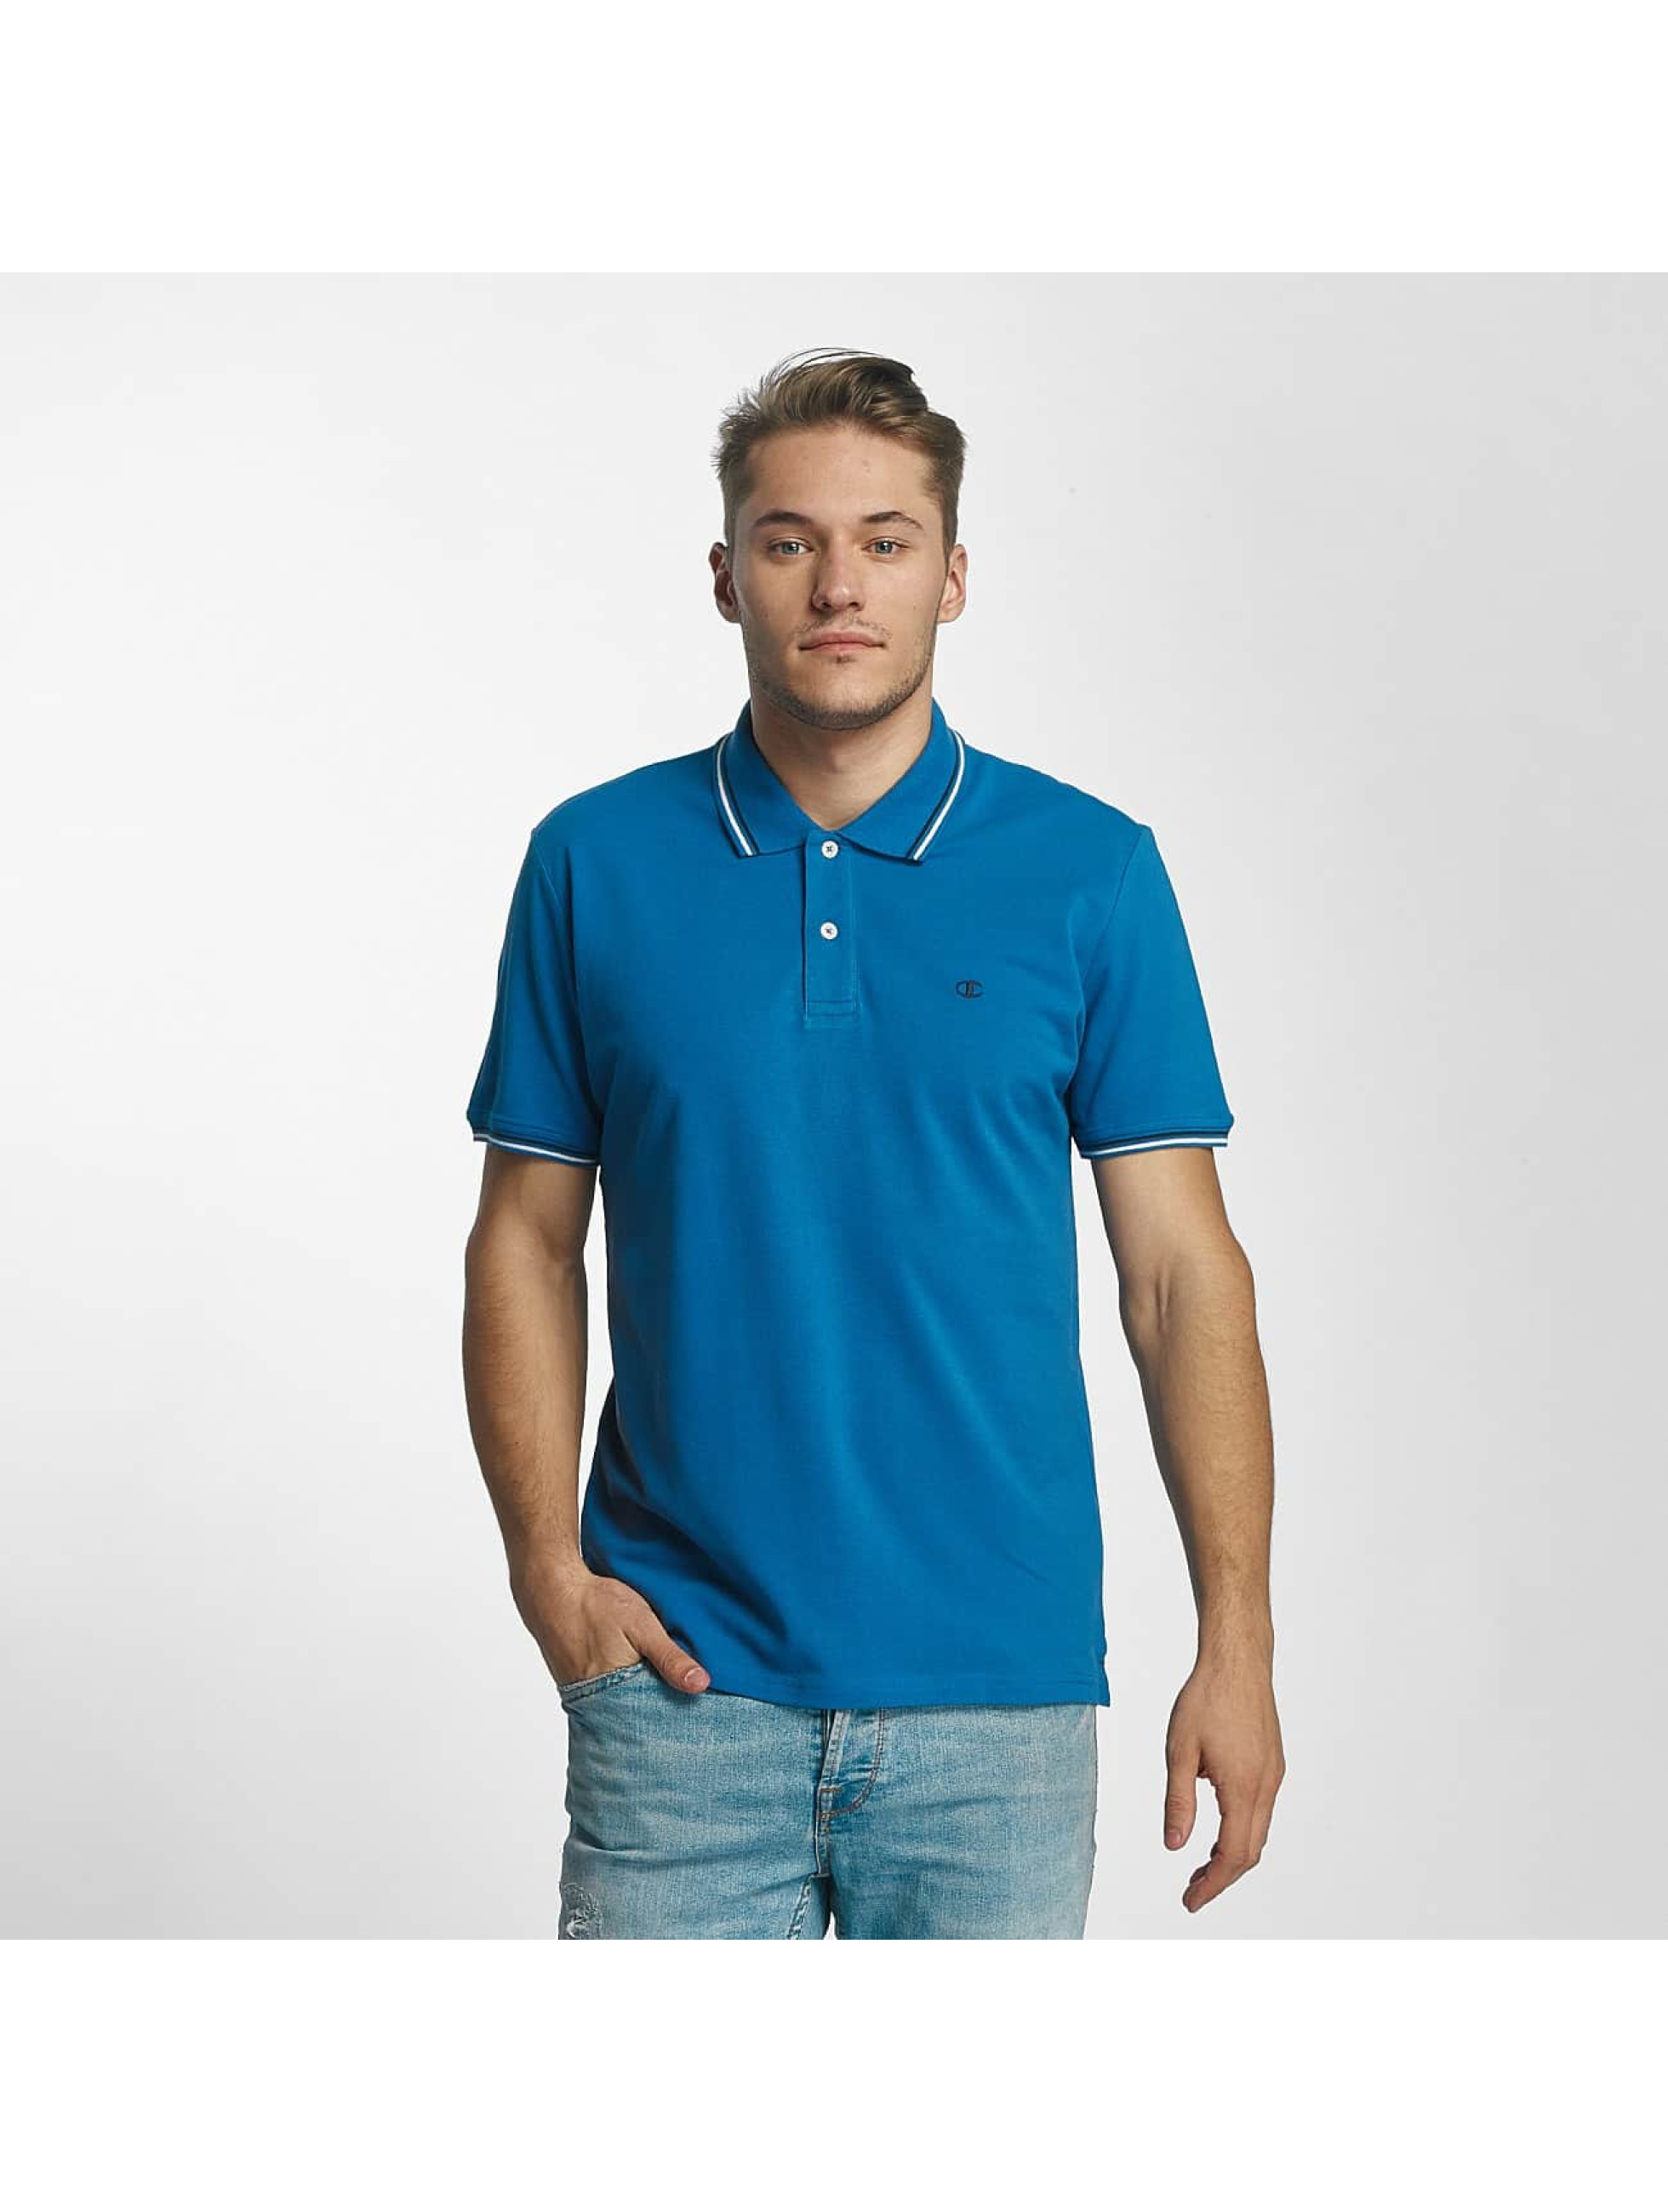 Champion Athletics Männer Poloshirt Metropolitan in blau